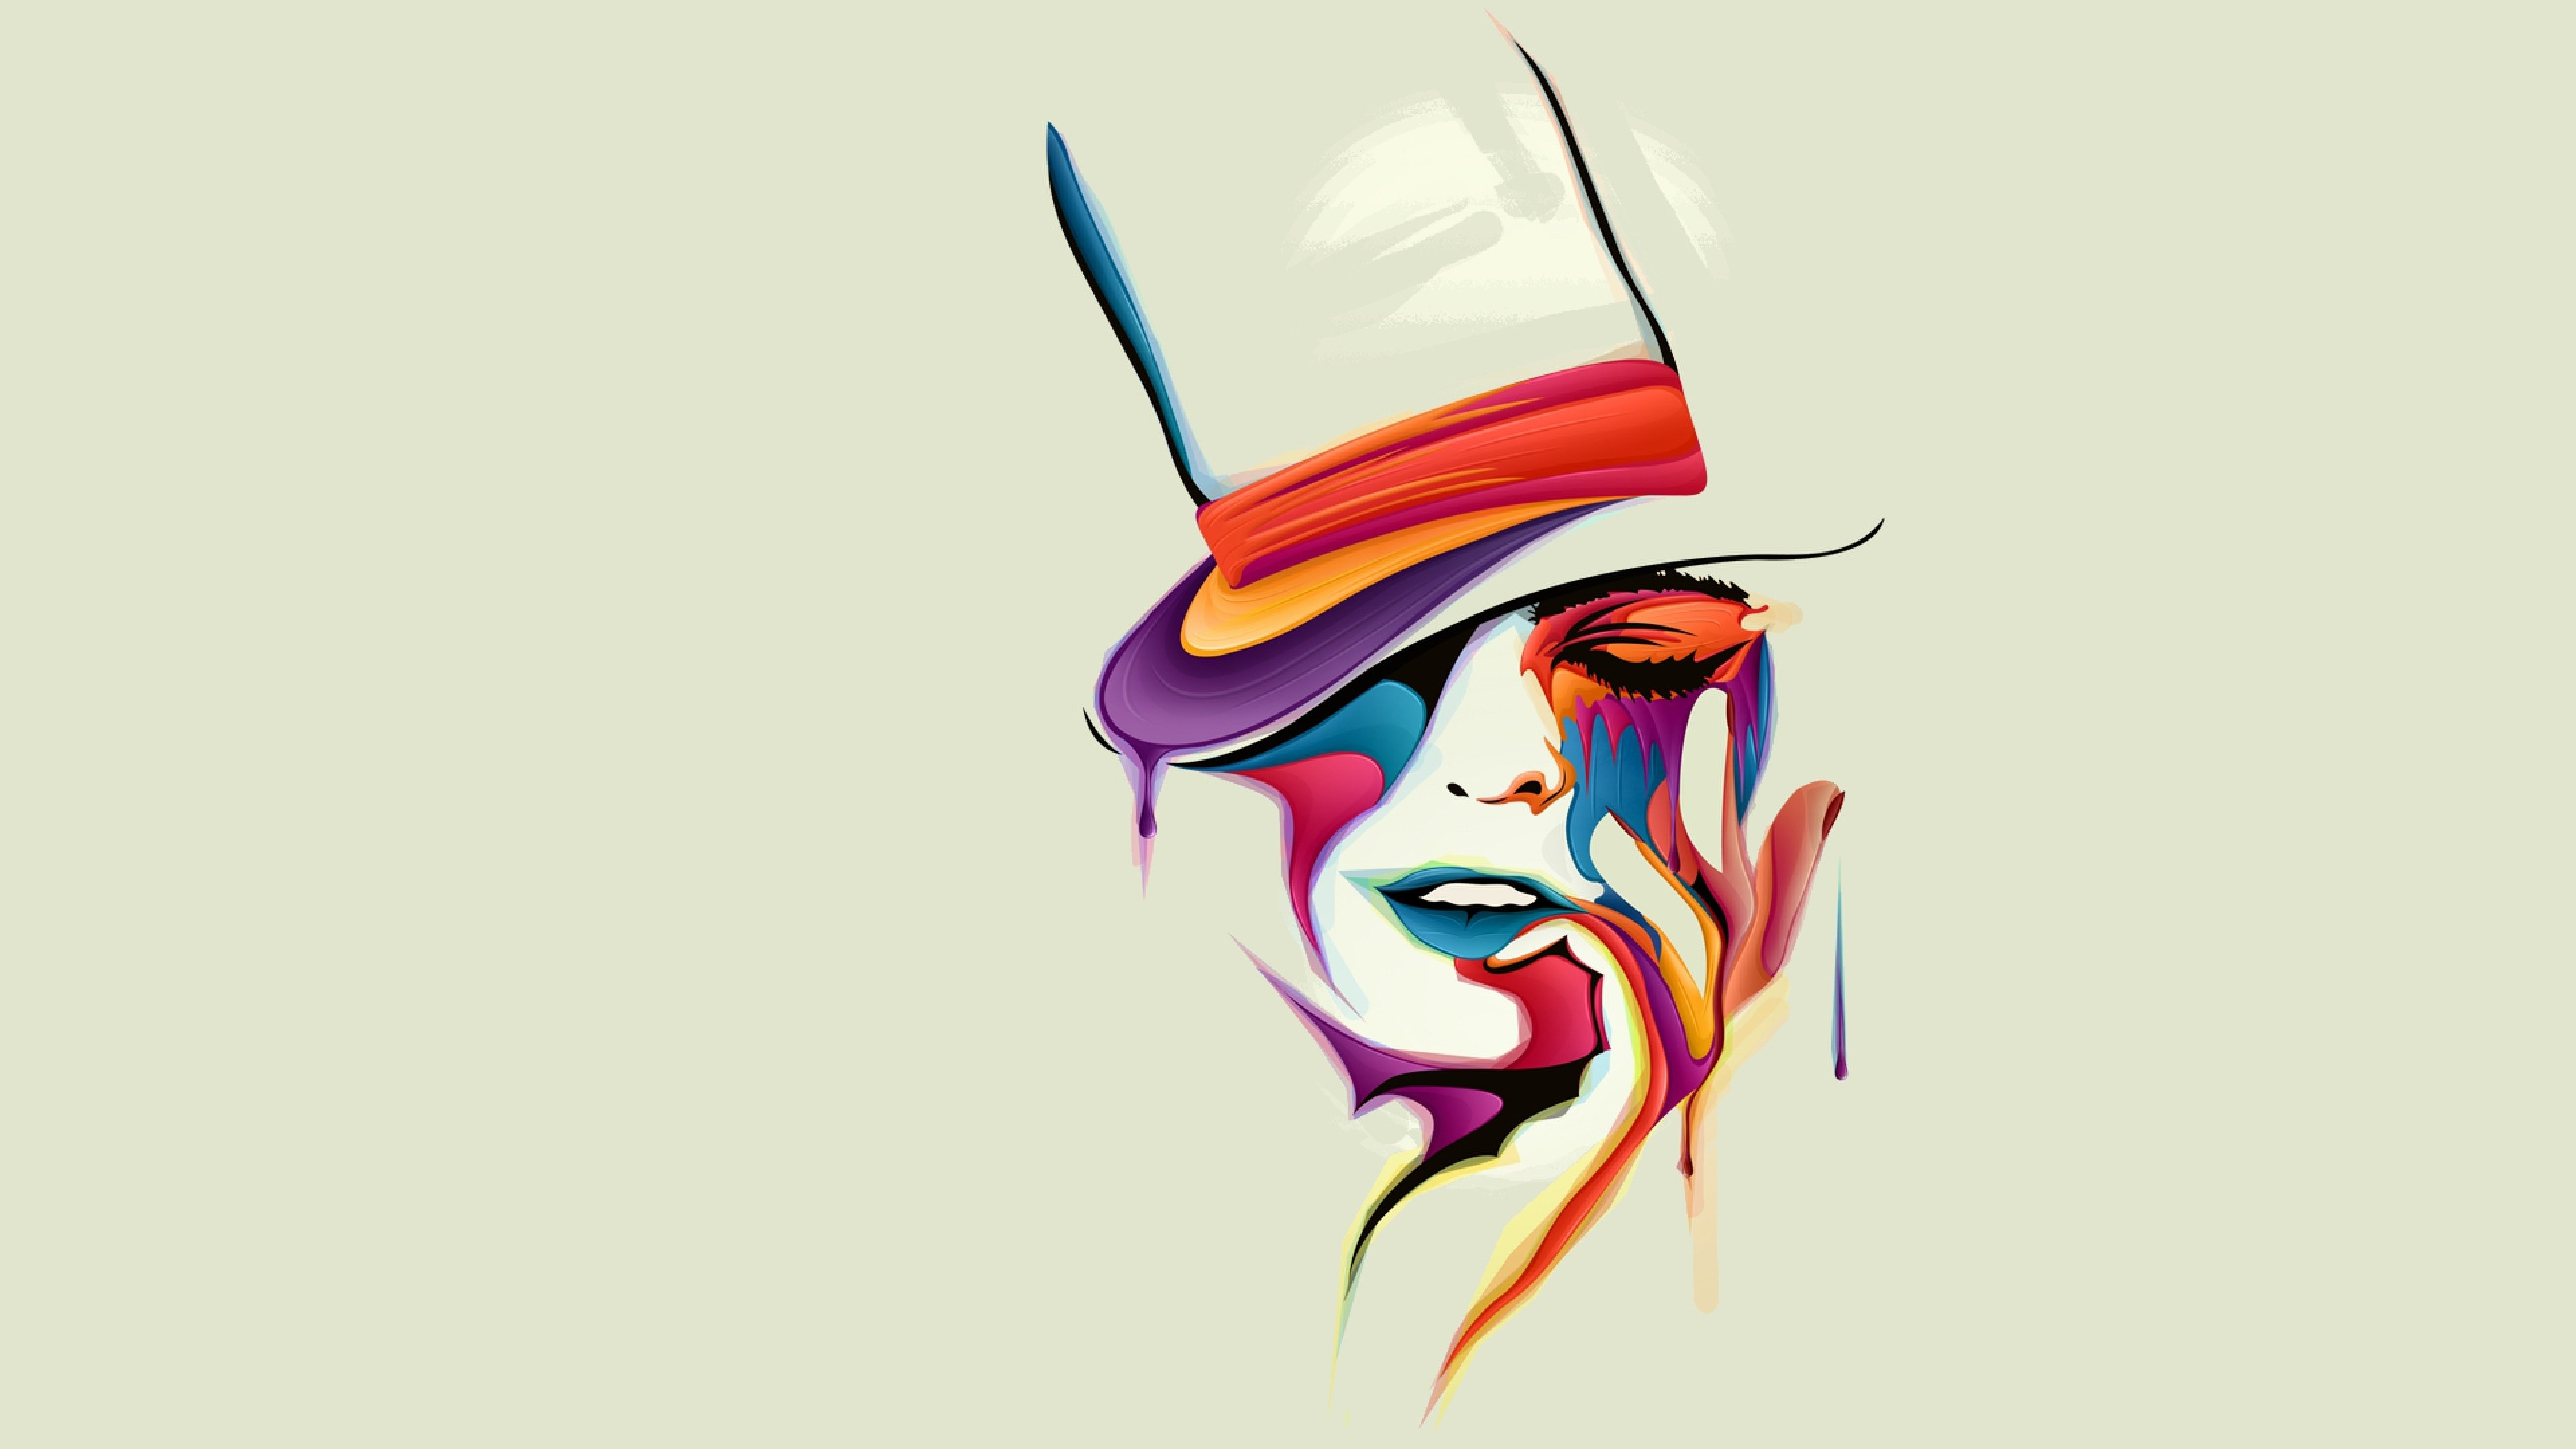 Face vector art hd artist 4k wallpapers images for Different types of abstract art